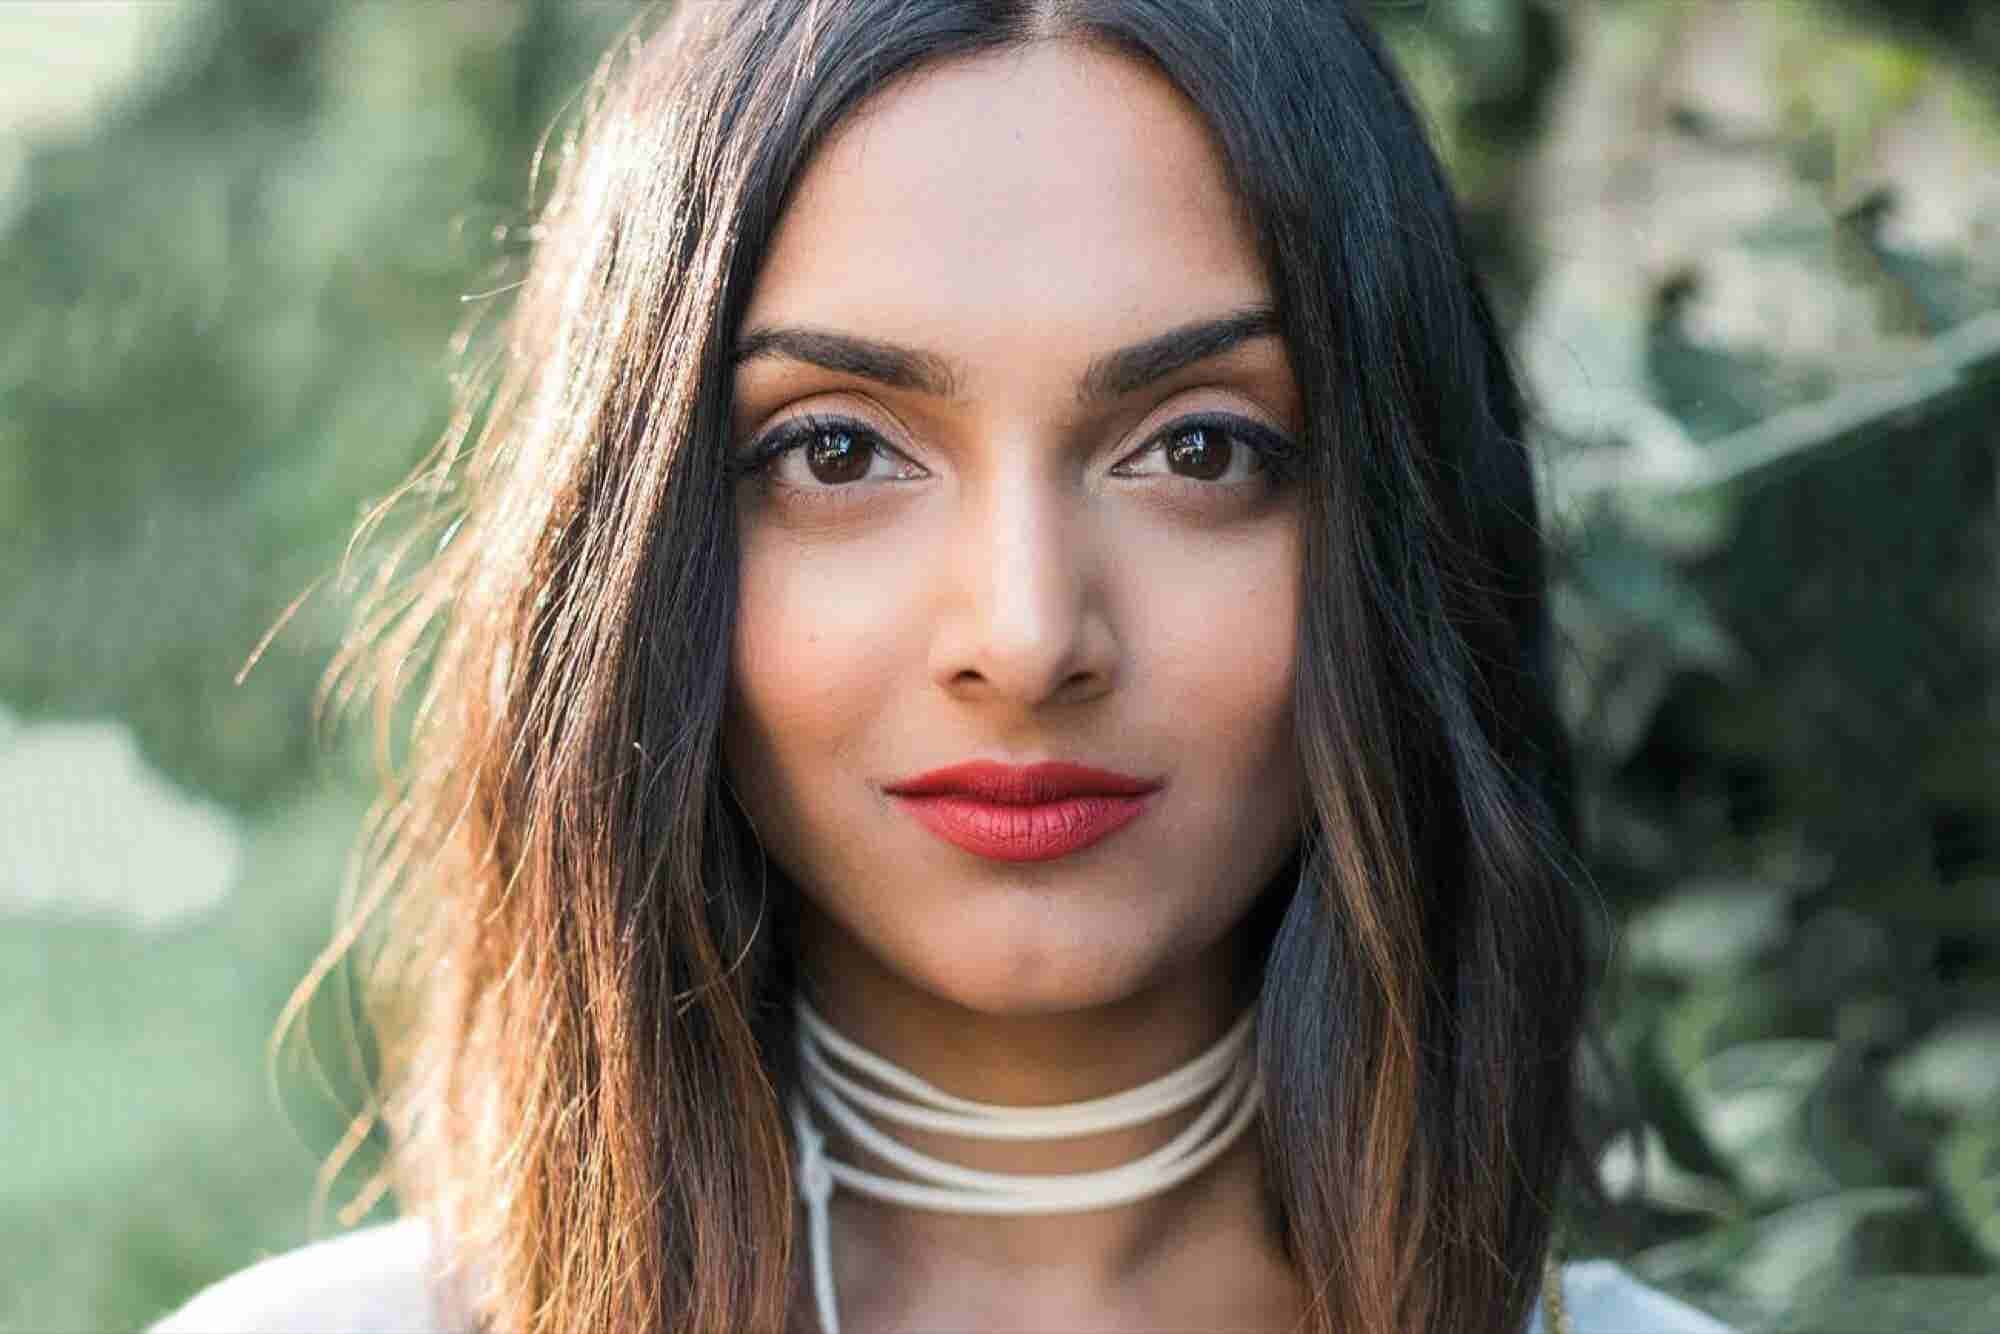 How This Woman's Life Completely Changed After She Posted a Beauty Tutorial for Brown-Skinned Women on YouTube